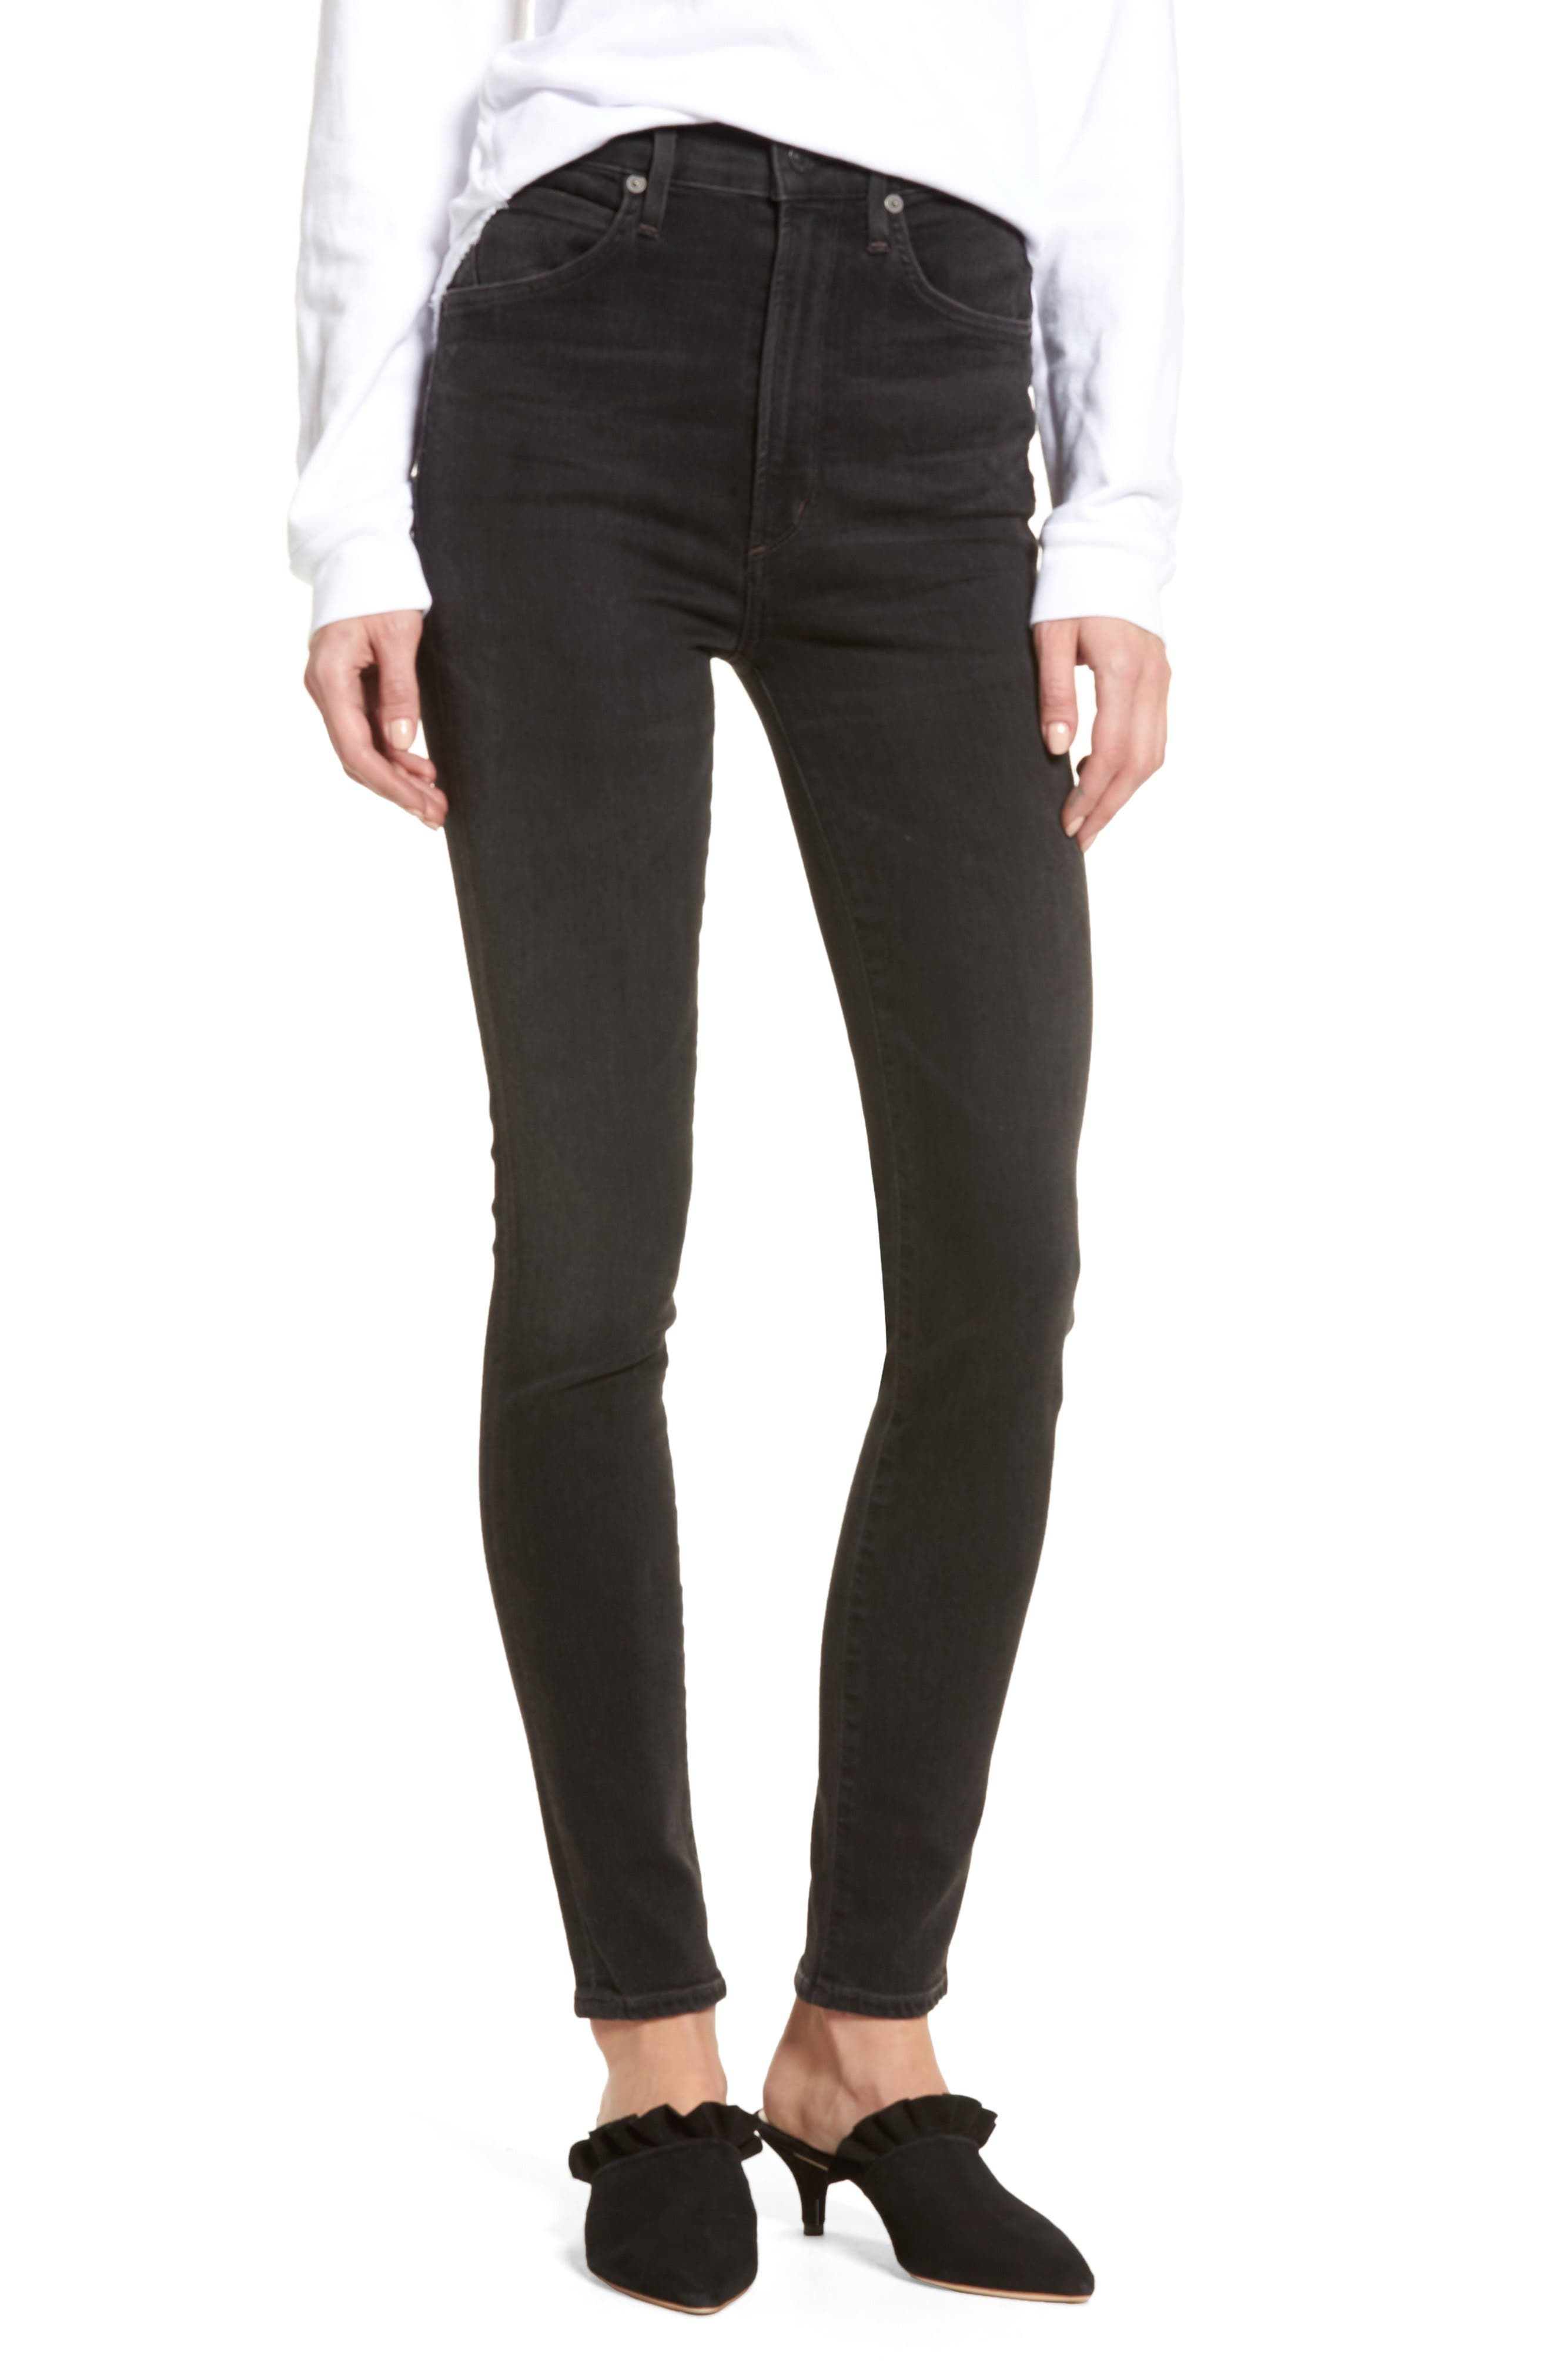 Main Image - Citizens of Humanity Chrissy High Waist Skinny Jeans (Darkness)